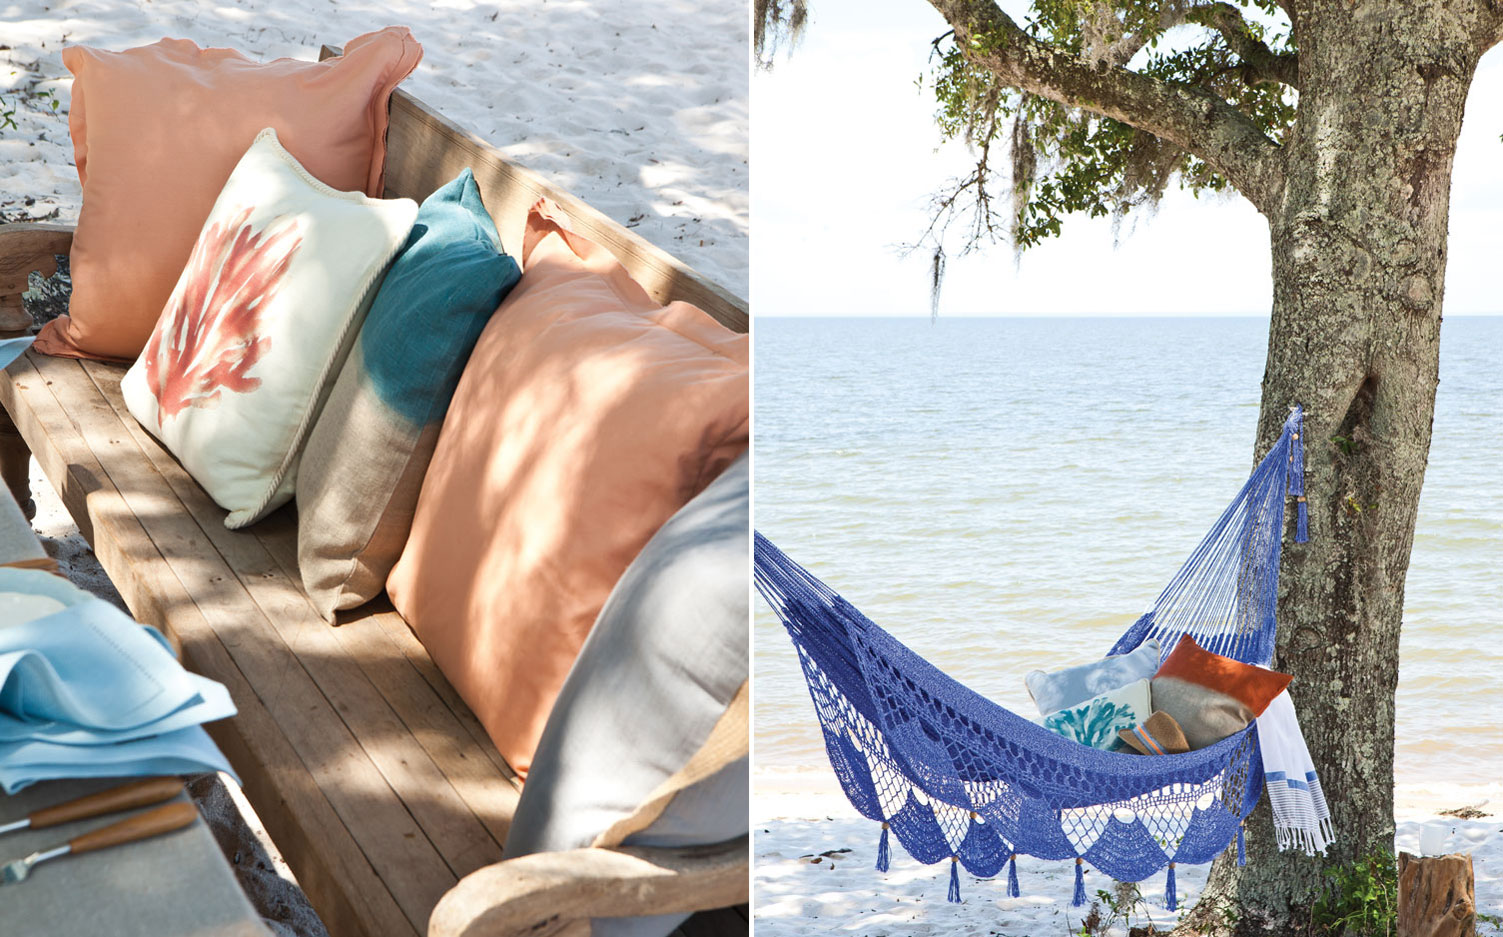 A picture of pillows on a bench on the beach and a picture of a hammock and pillows on the beach